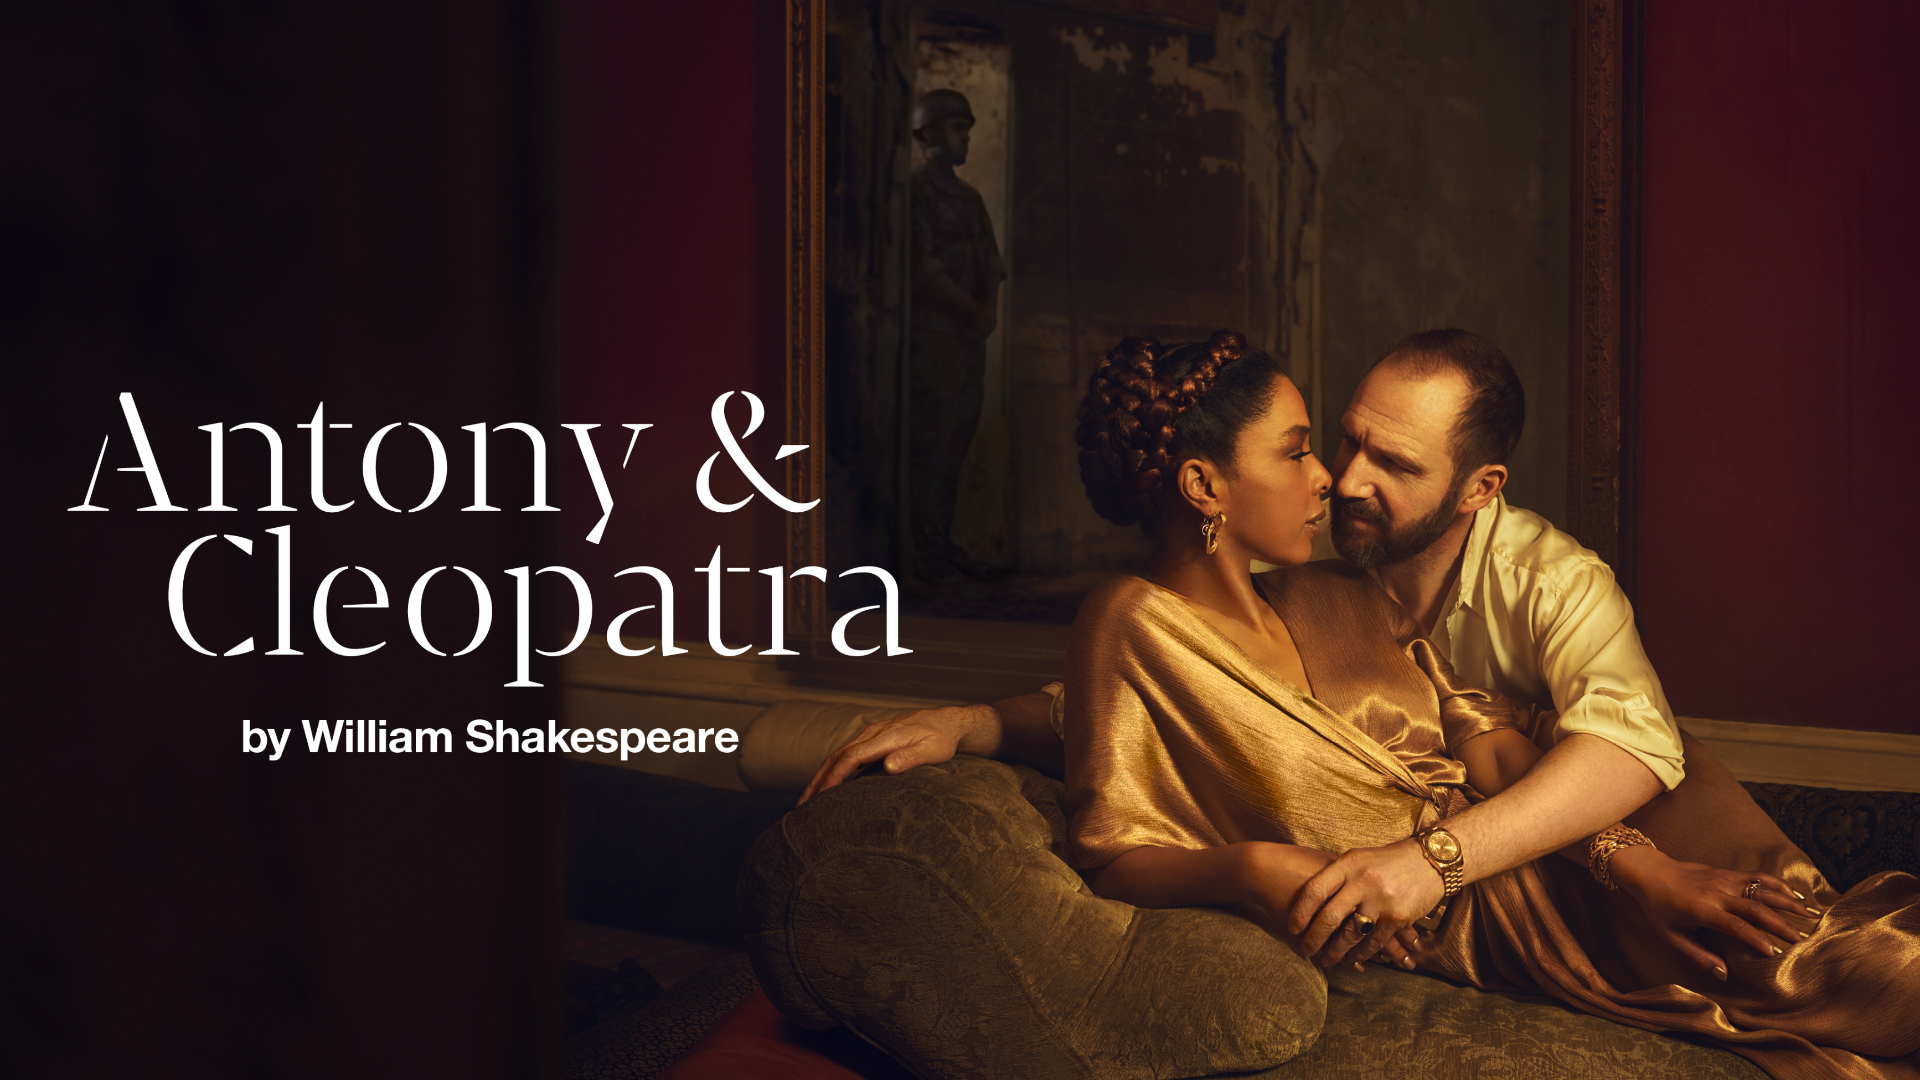 Antony and Cleopatra by William Shakespeare written in white, to the left of Sophie Okonedo and Ralph Fiennes, who embrace while laying down